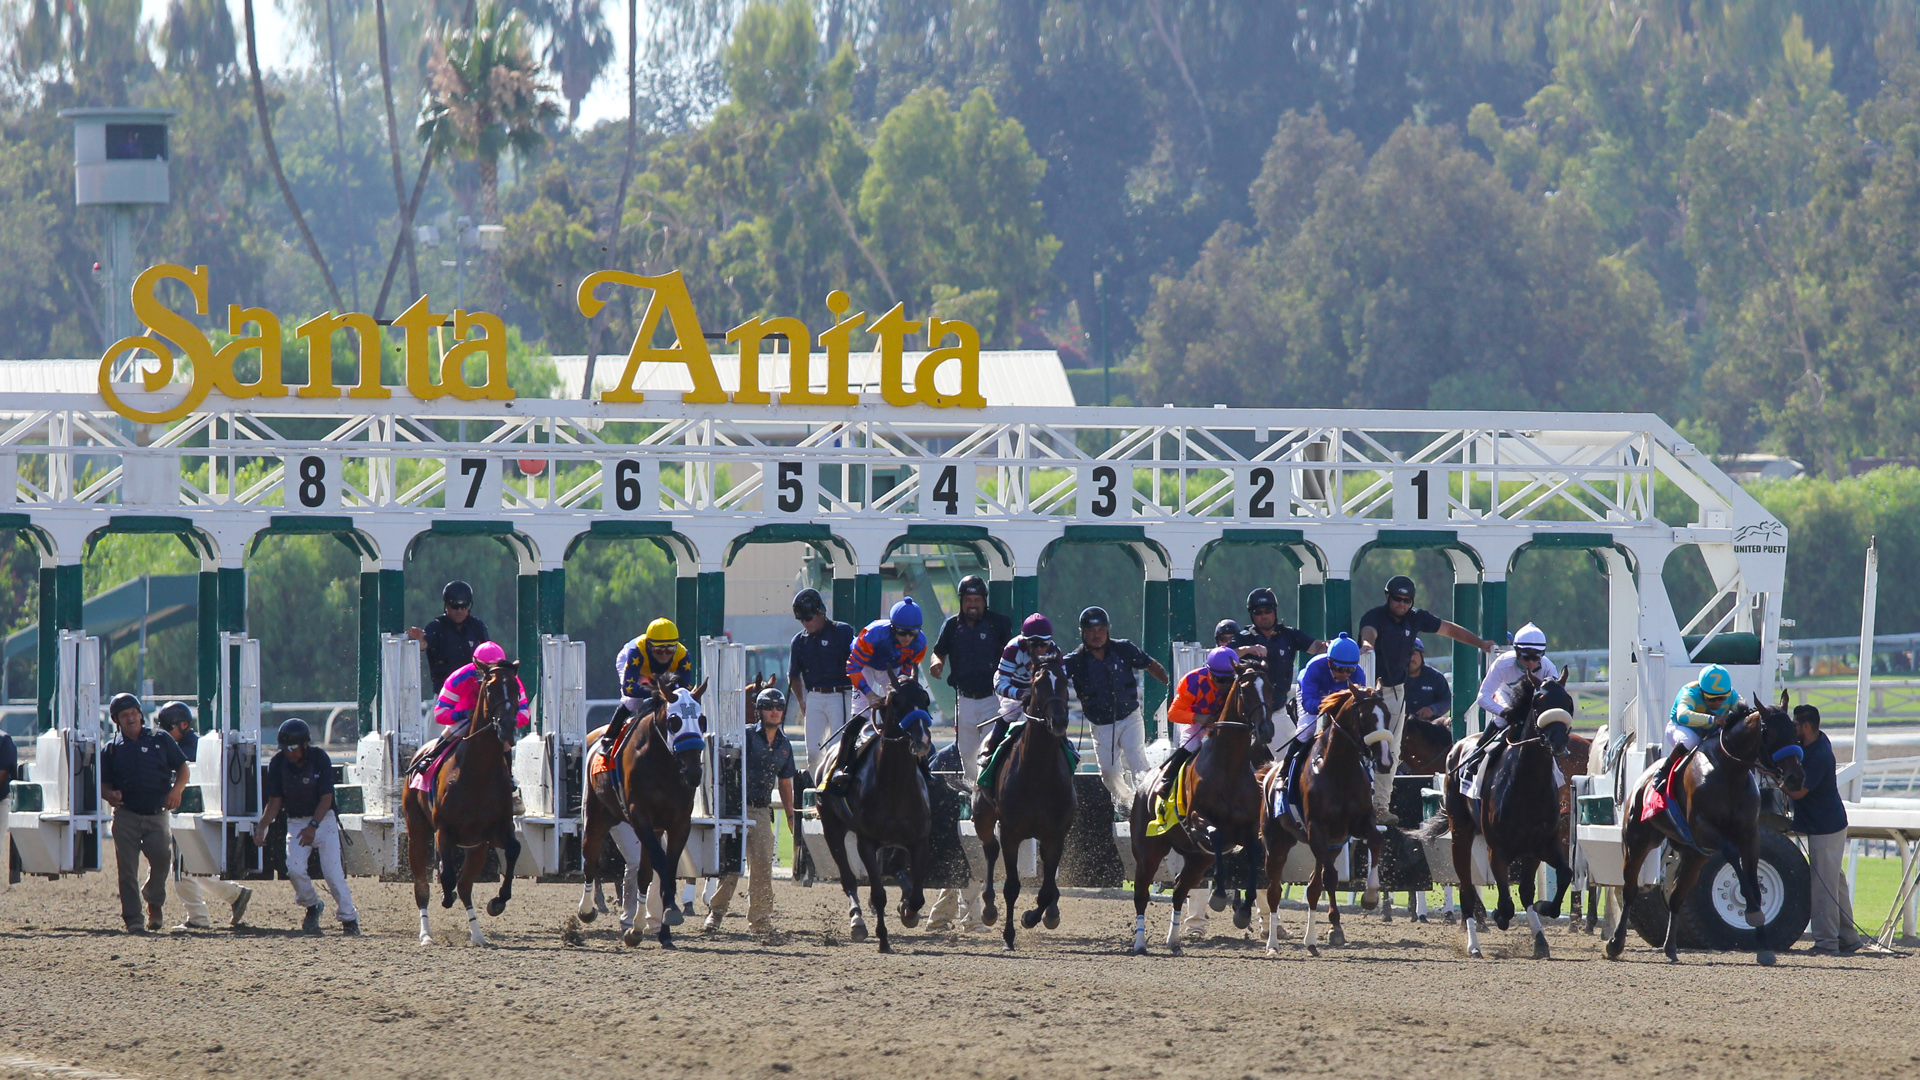 Jeff Siegel's Blog: Santa Anita Analysis for May 12, 2016